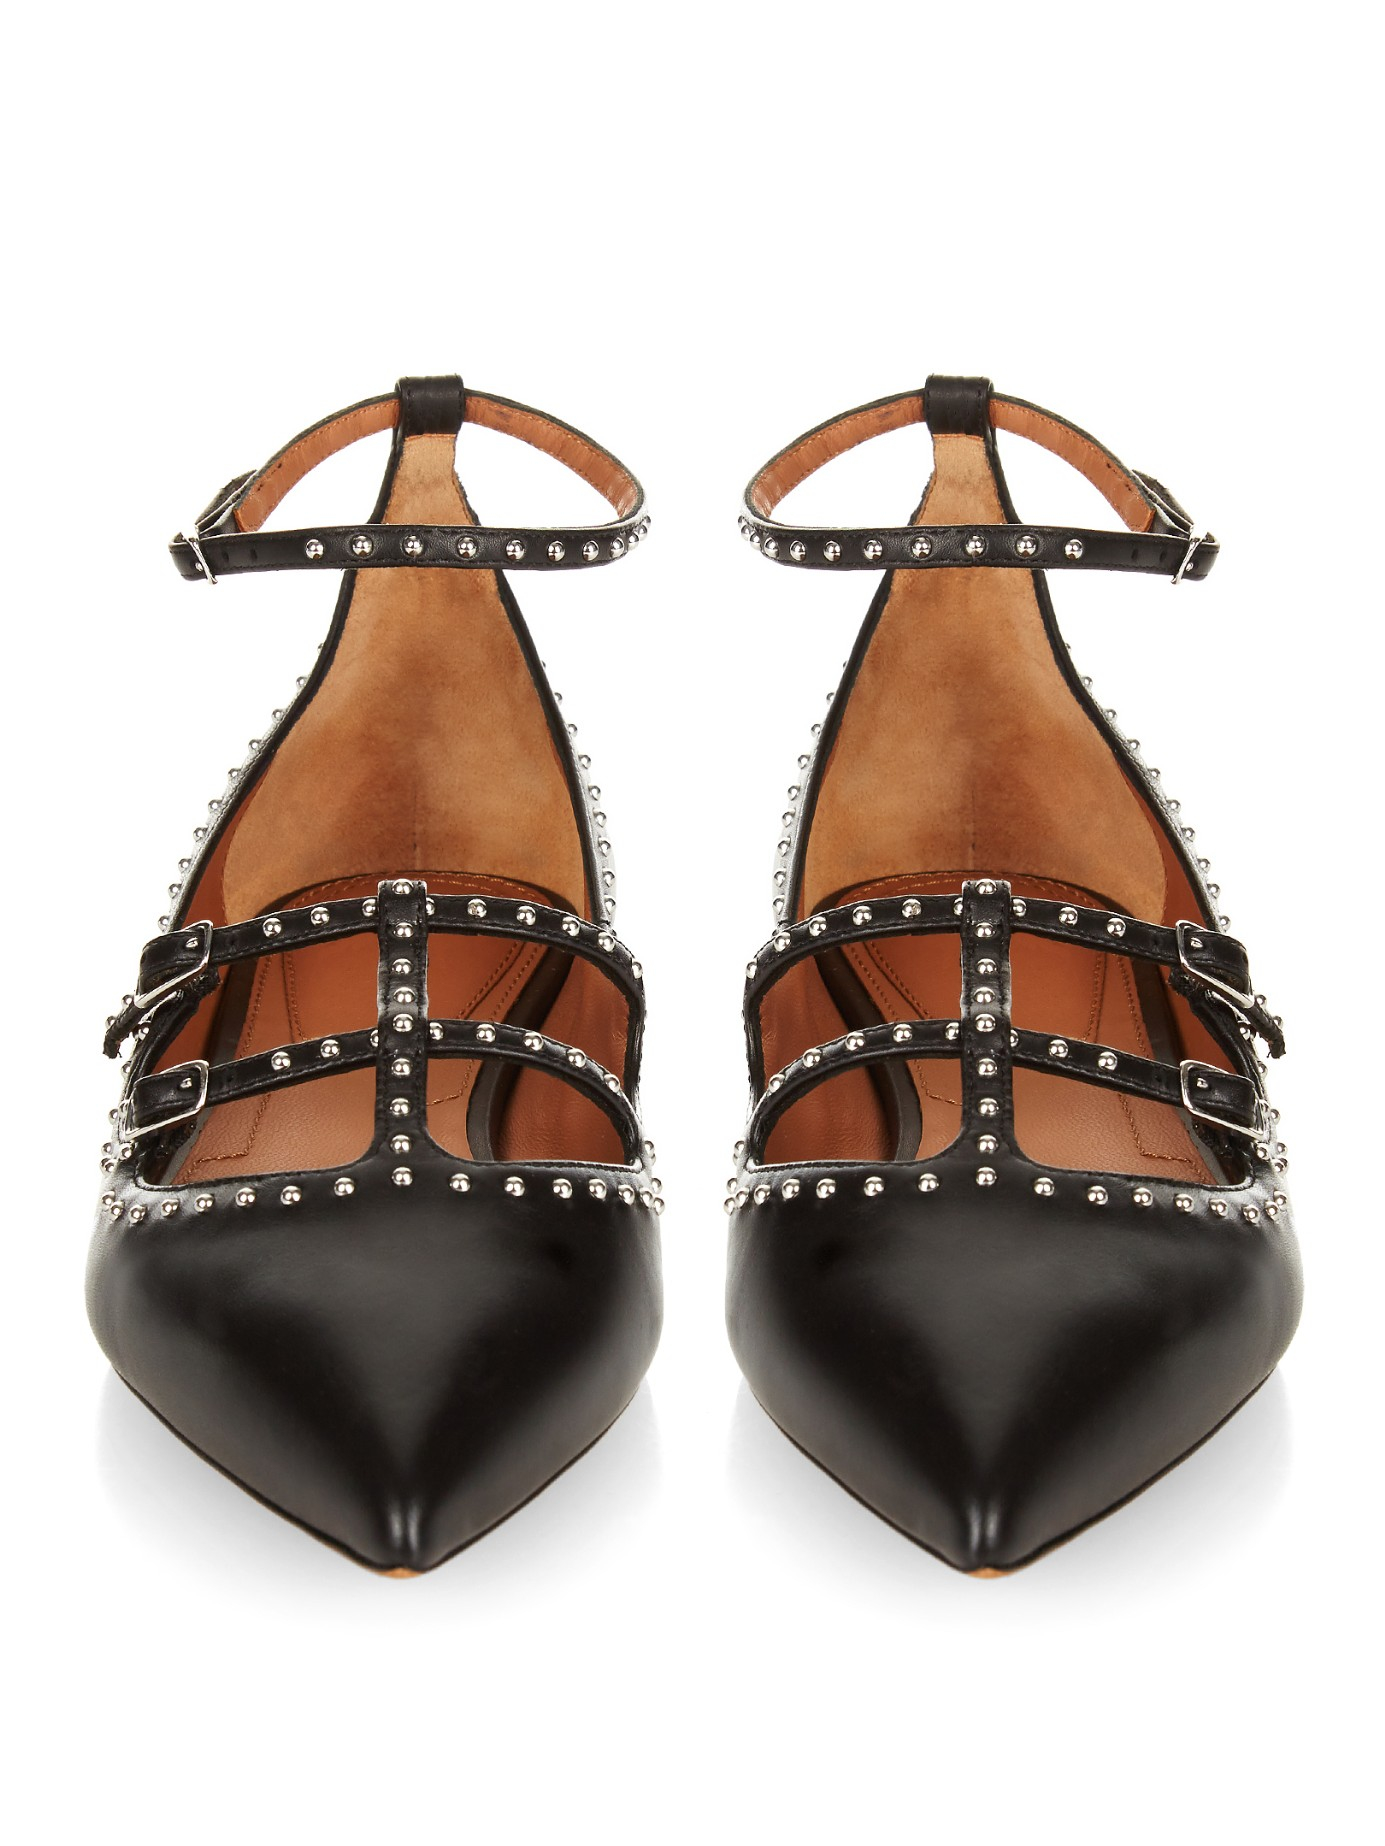 purchase online Givenchy Embellished Leather Flats free shipping low shipping fee gIKID0s7